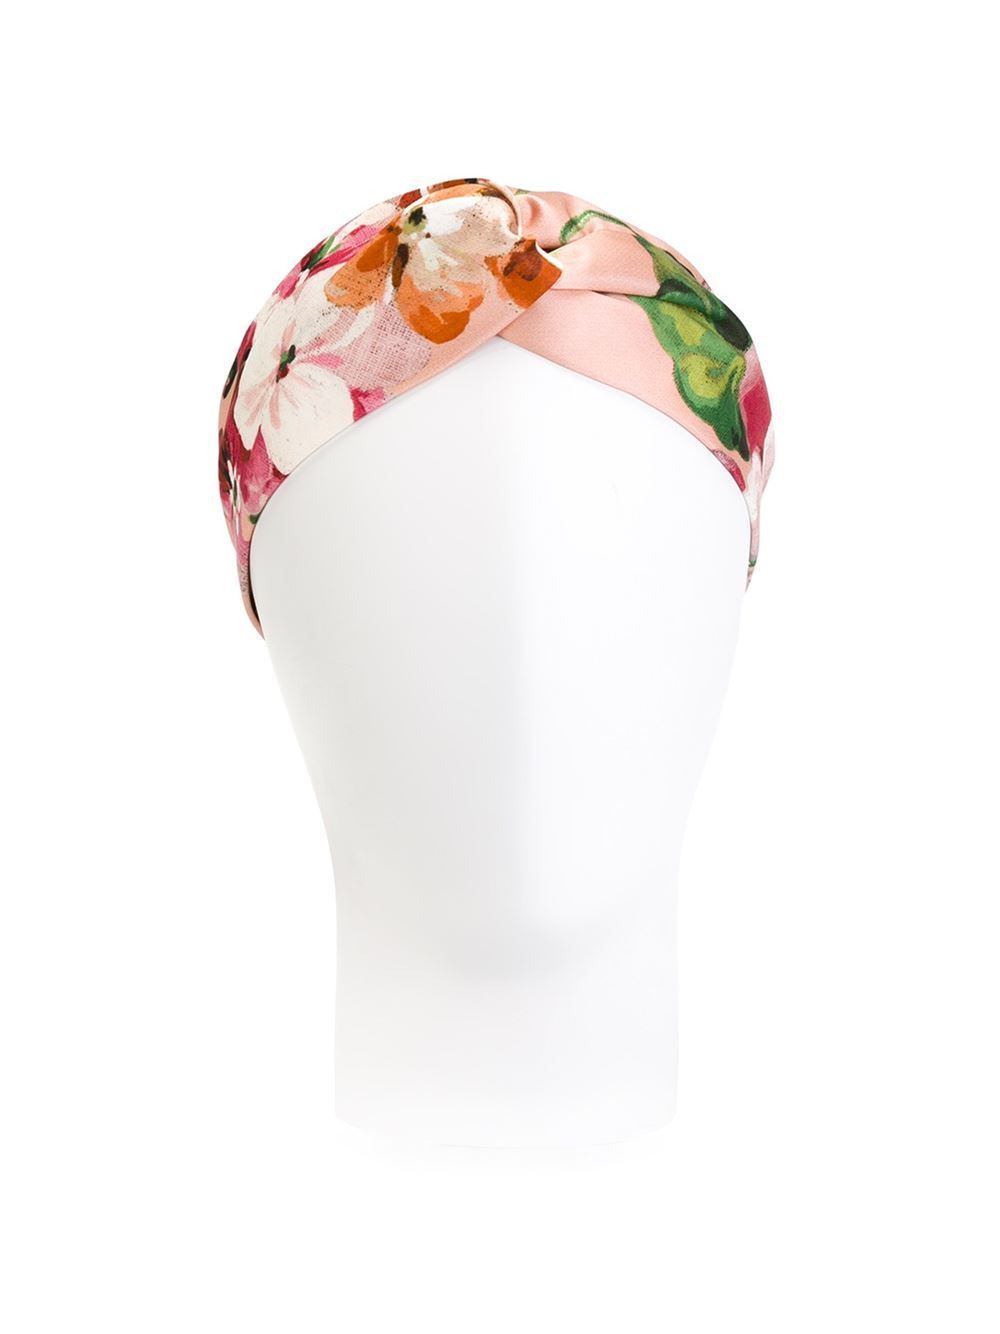 162019aeb3a32 Gucci Silk Headband With Blooms Print in Pink - Lyst